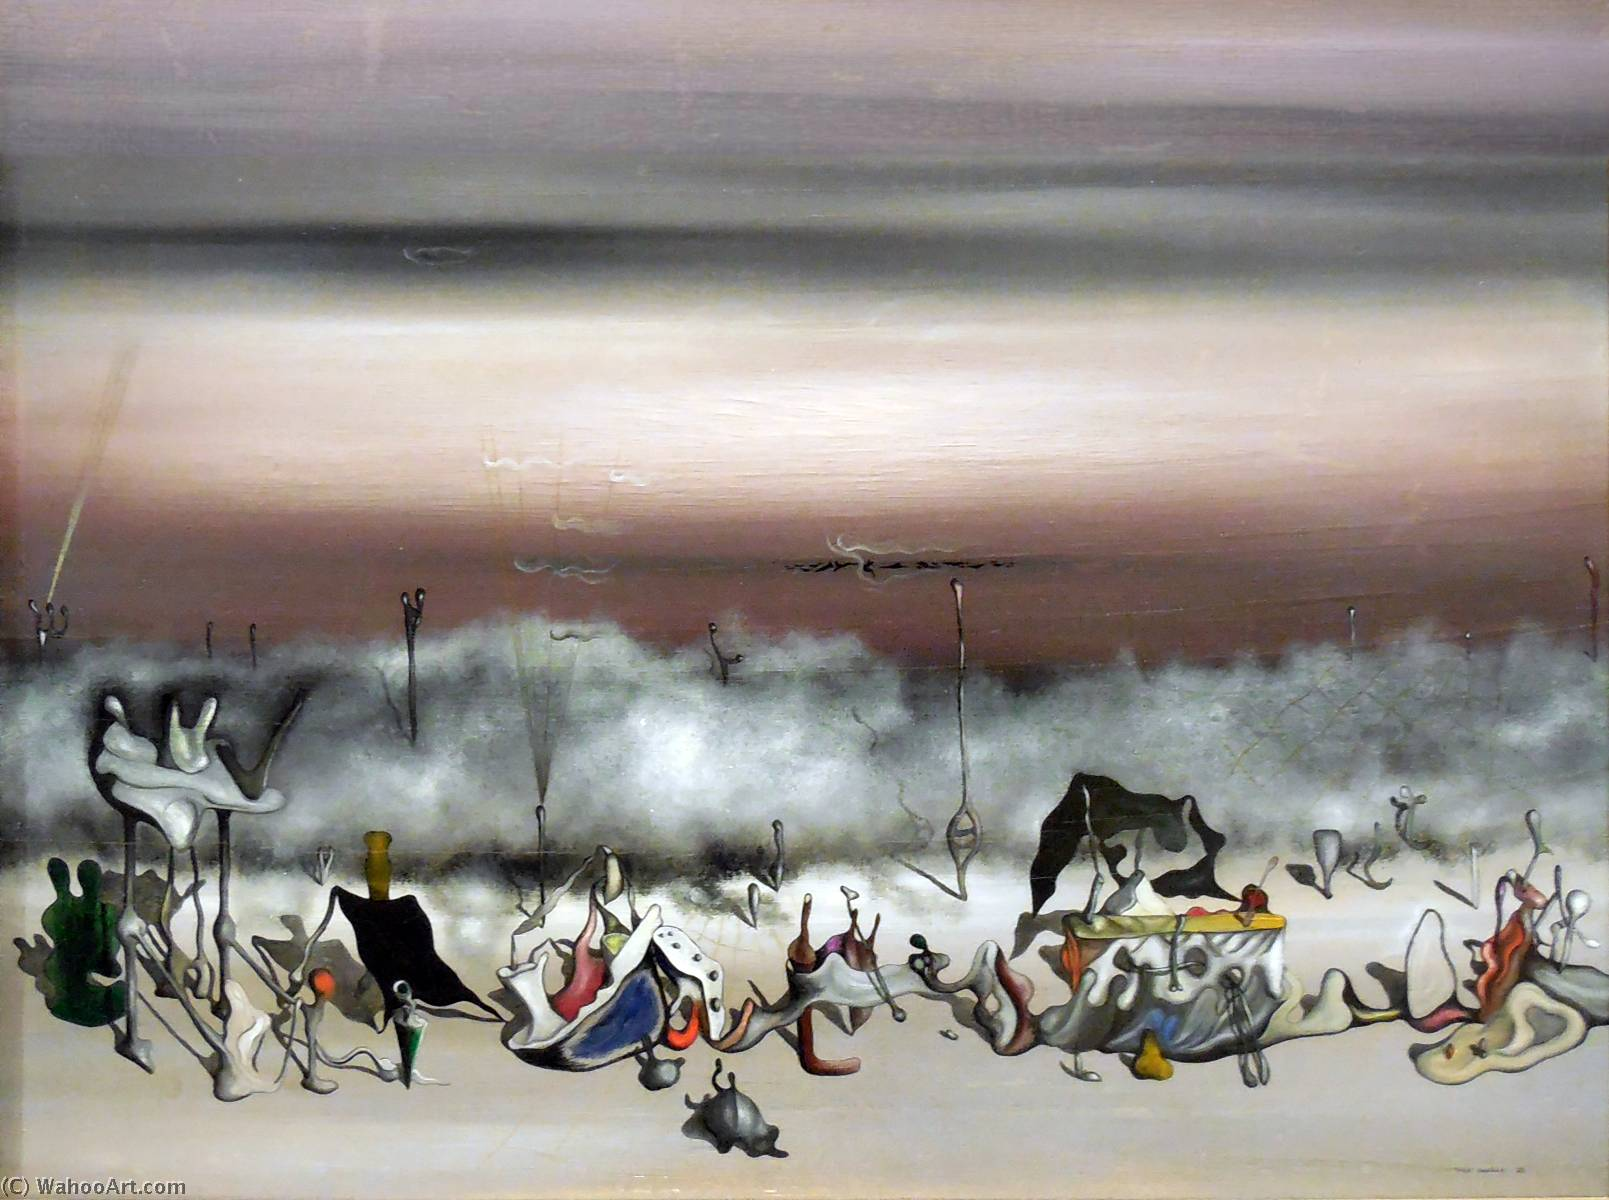 | The Ribbon of Excess by Yves Tanguy | Most-Famous-Paintings.com